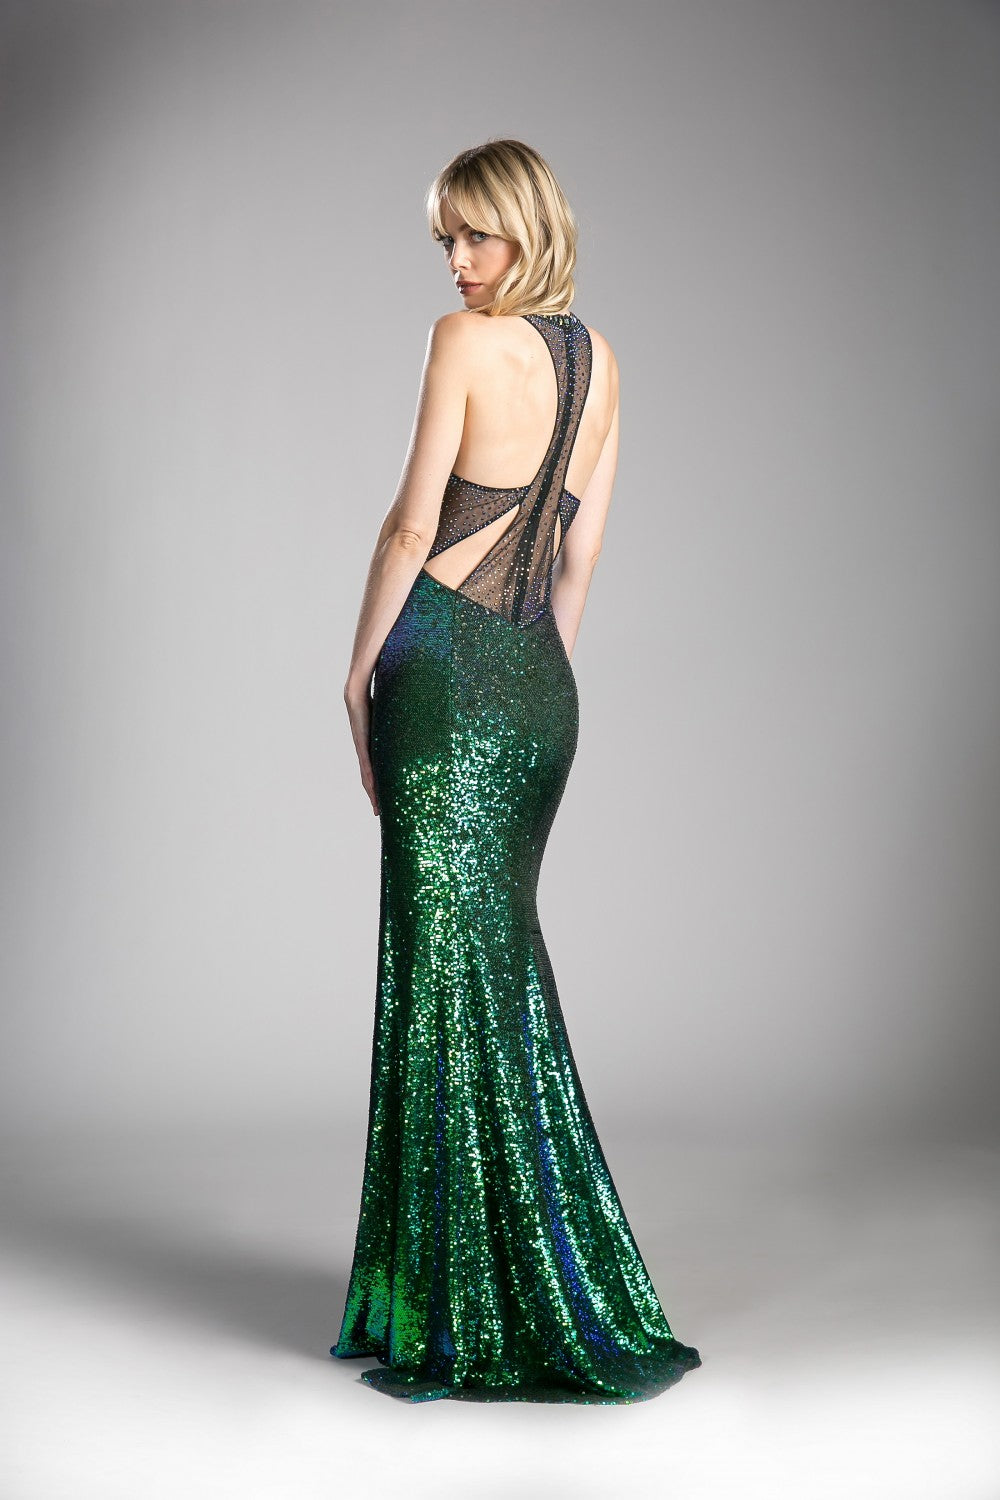 Fitted Iridescent Sequin Gown With Keyhole Front And Cut Out Back